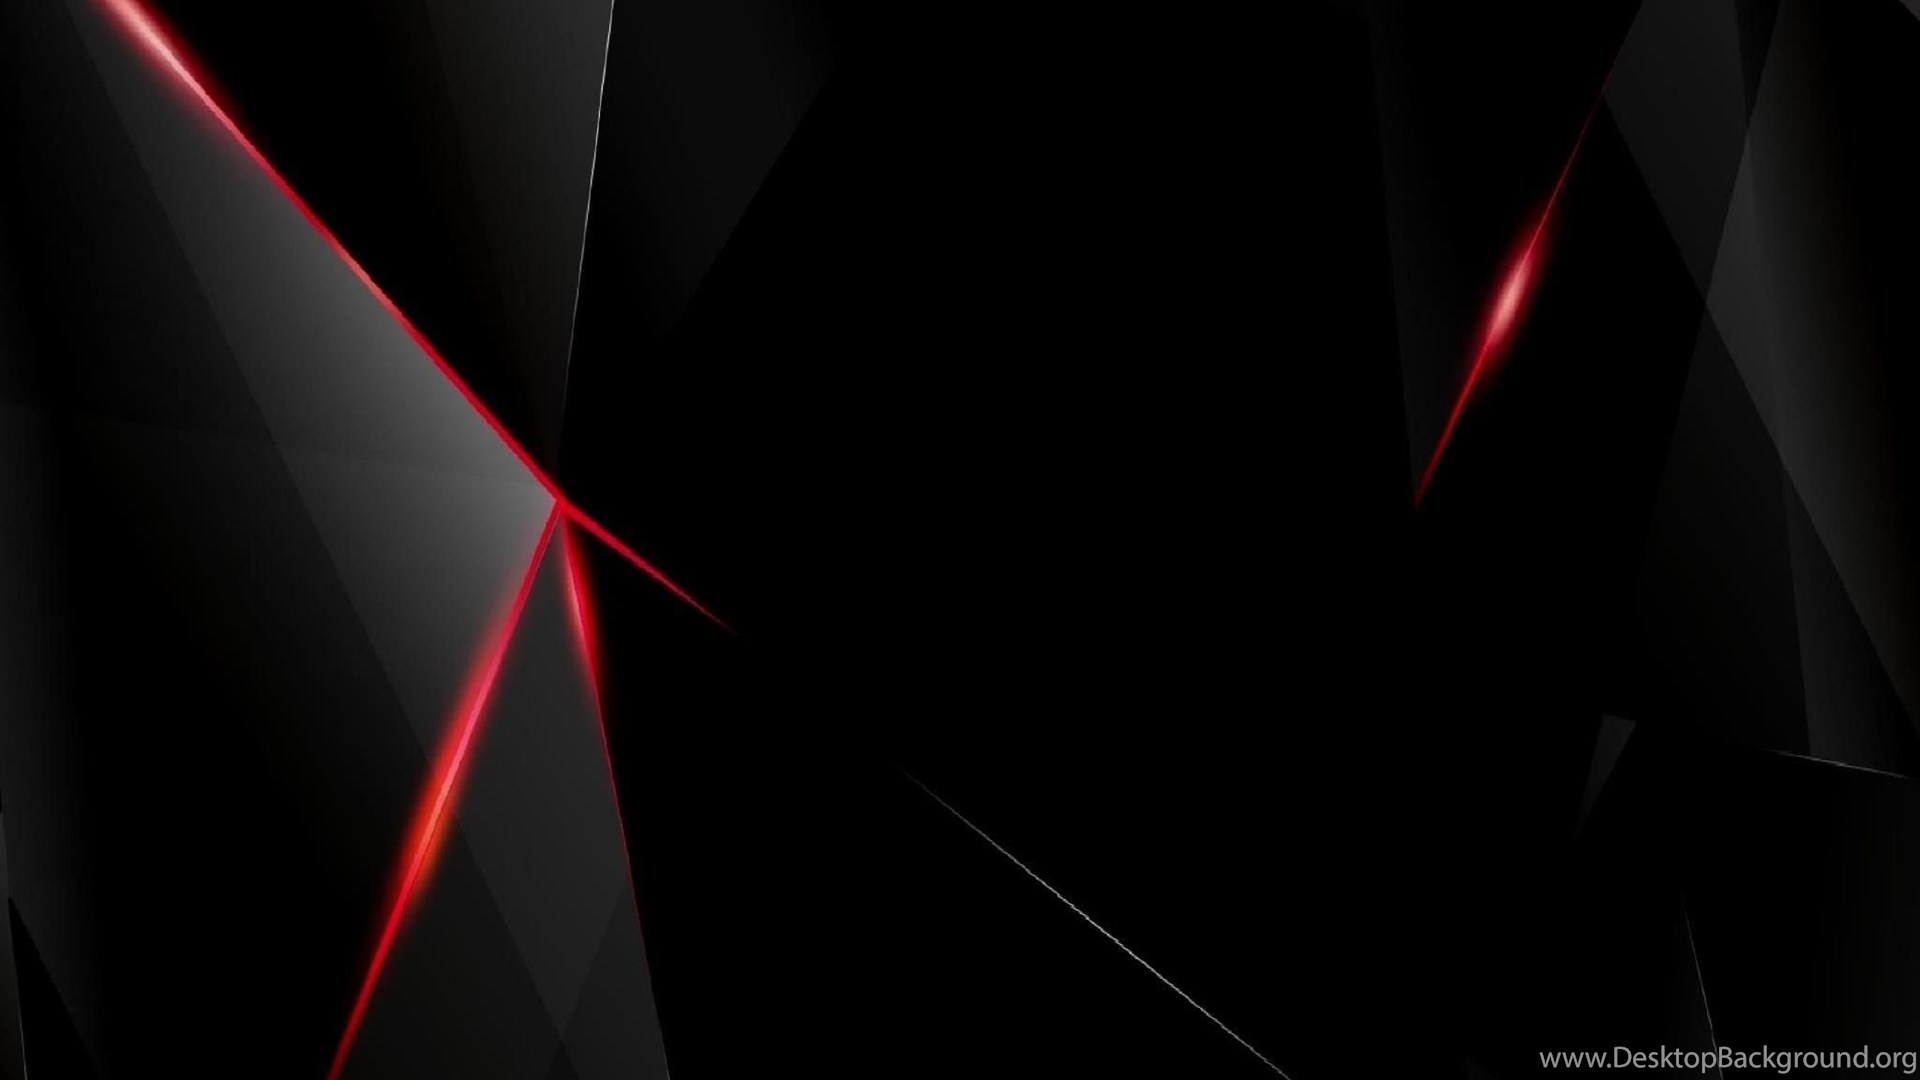 Black And Red Abstract Wallpapers Desktop Background